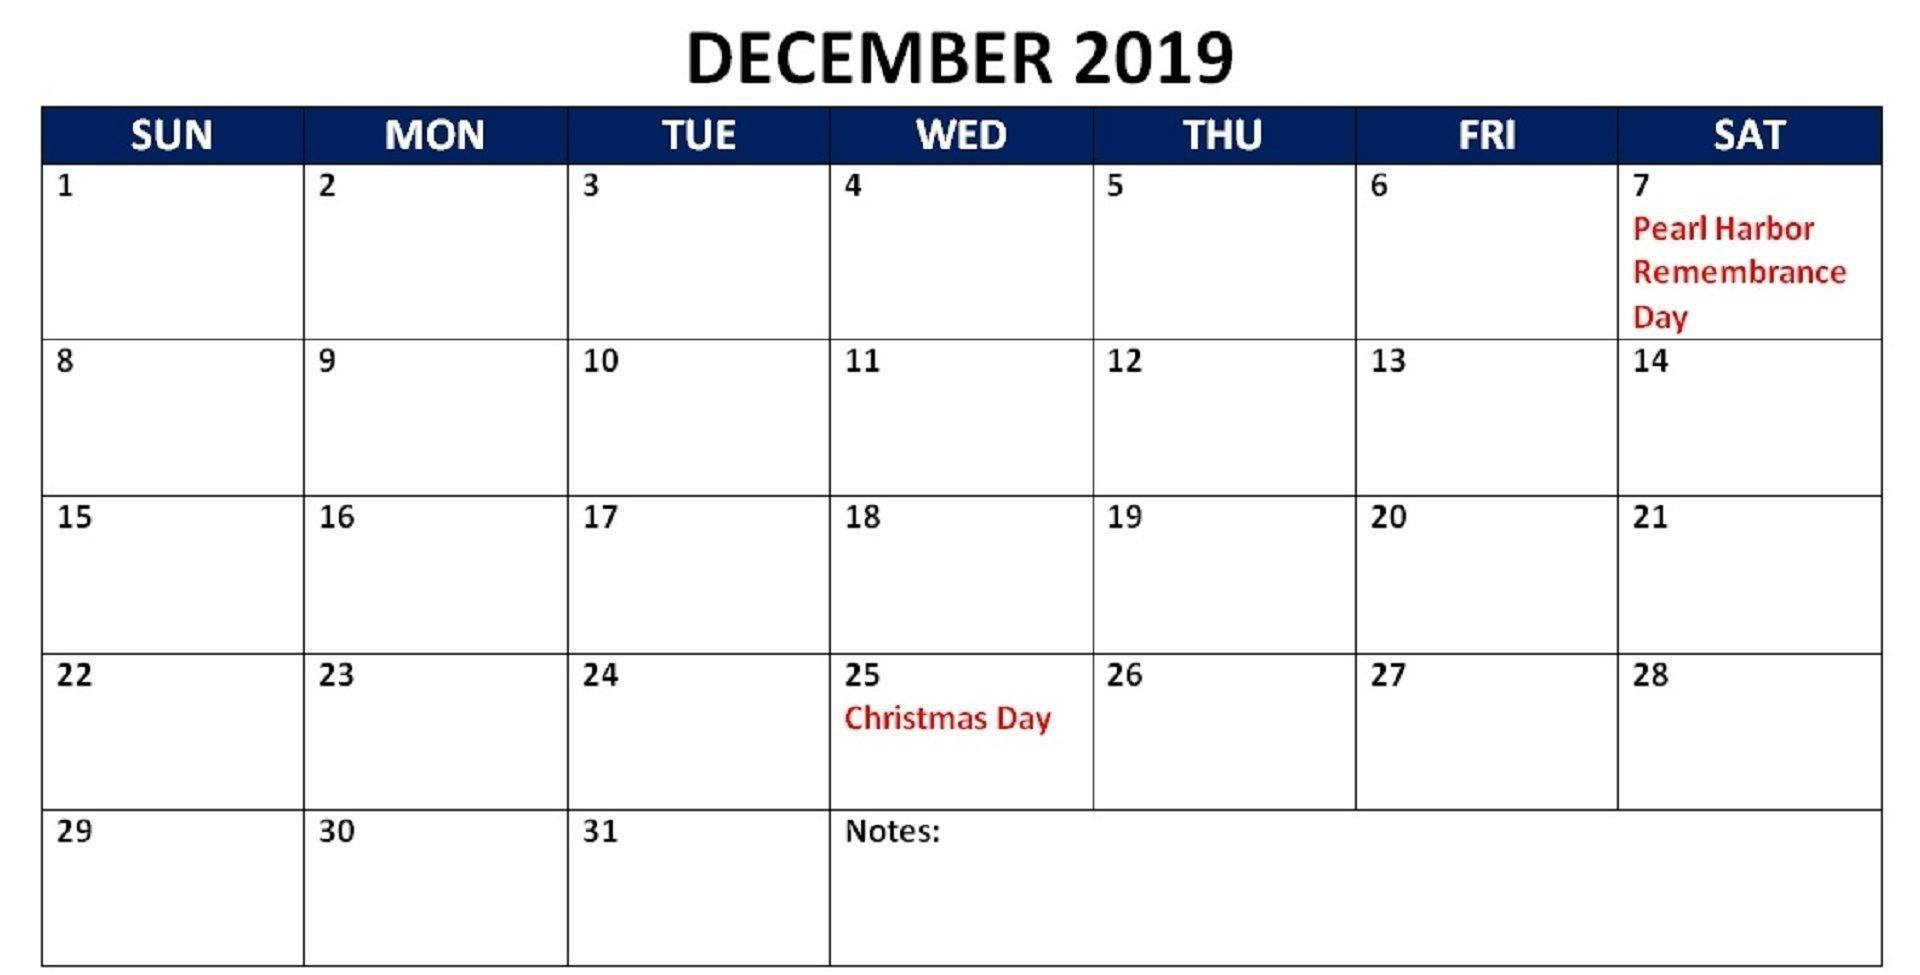 December 2019 Calendar With Holidays UK